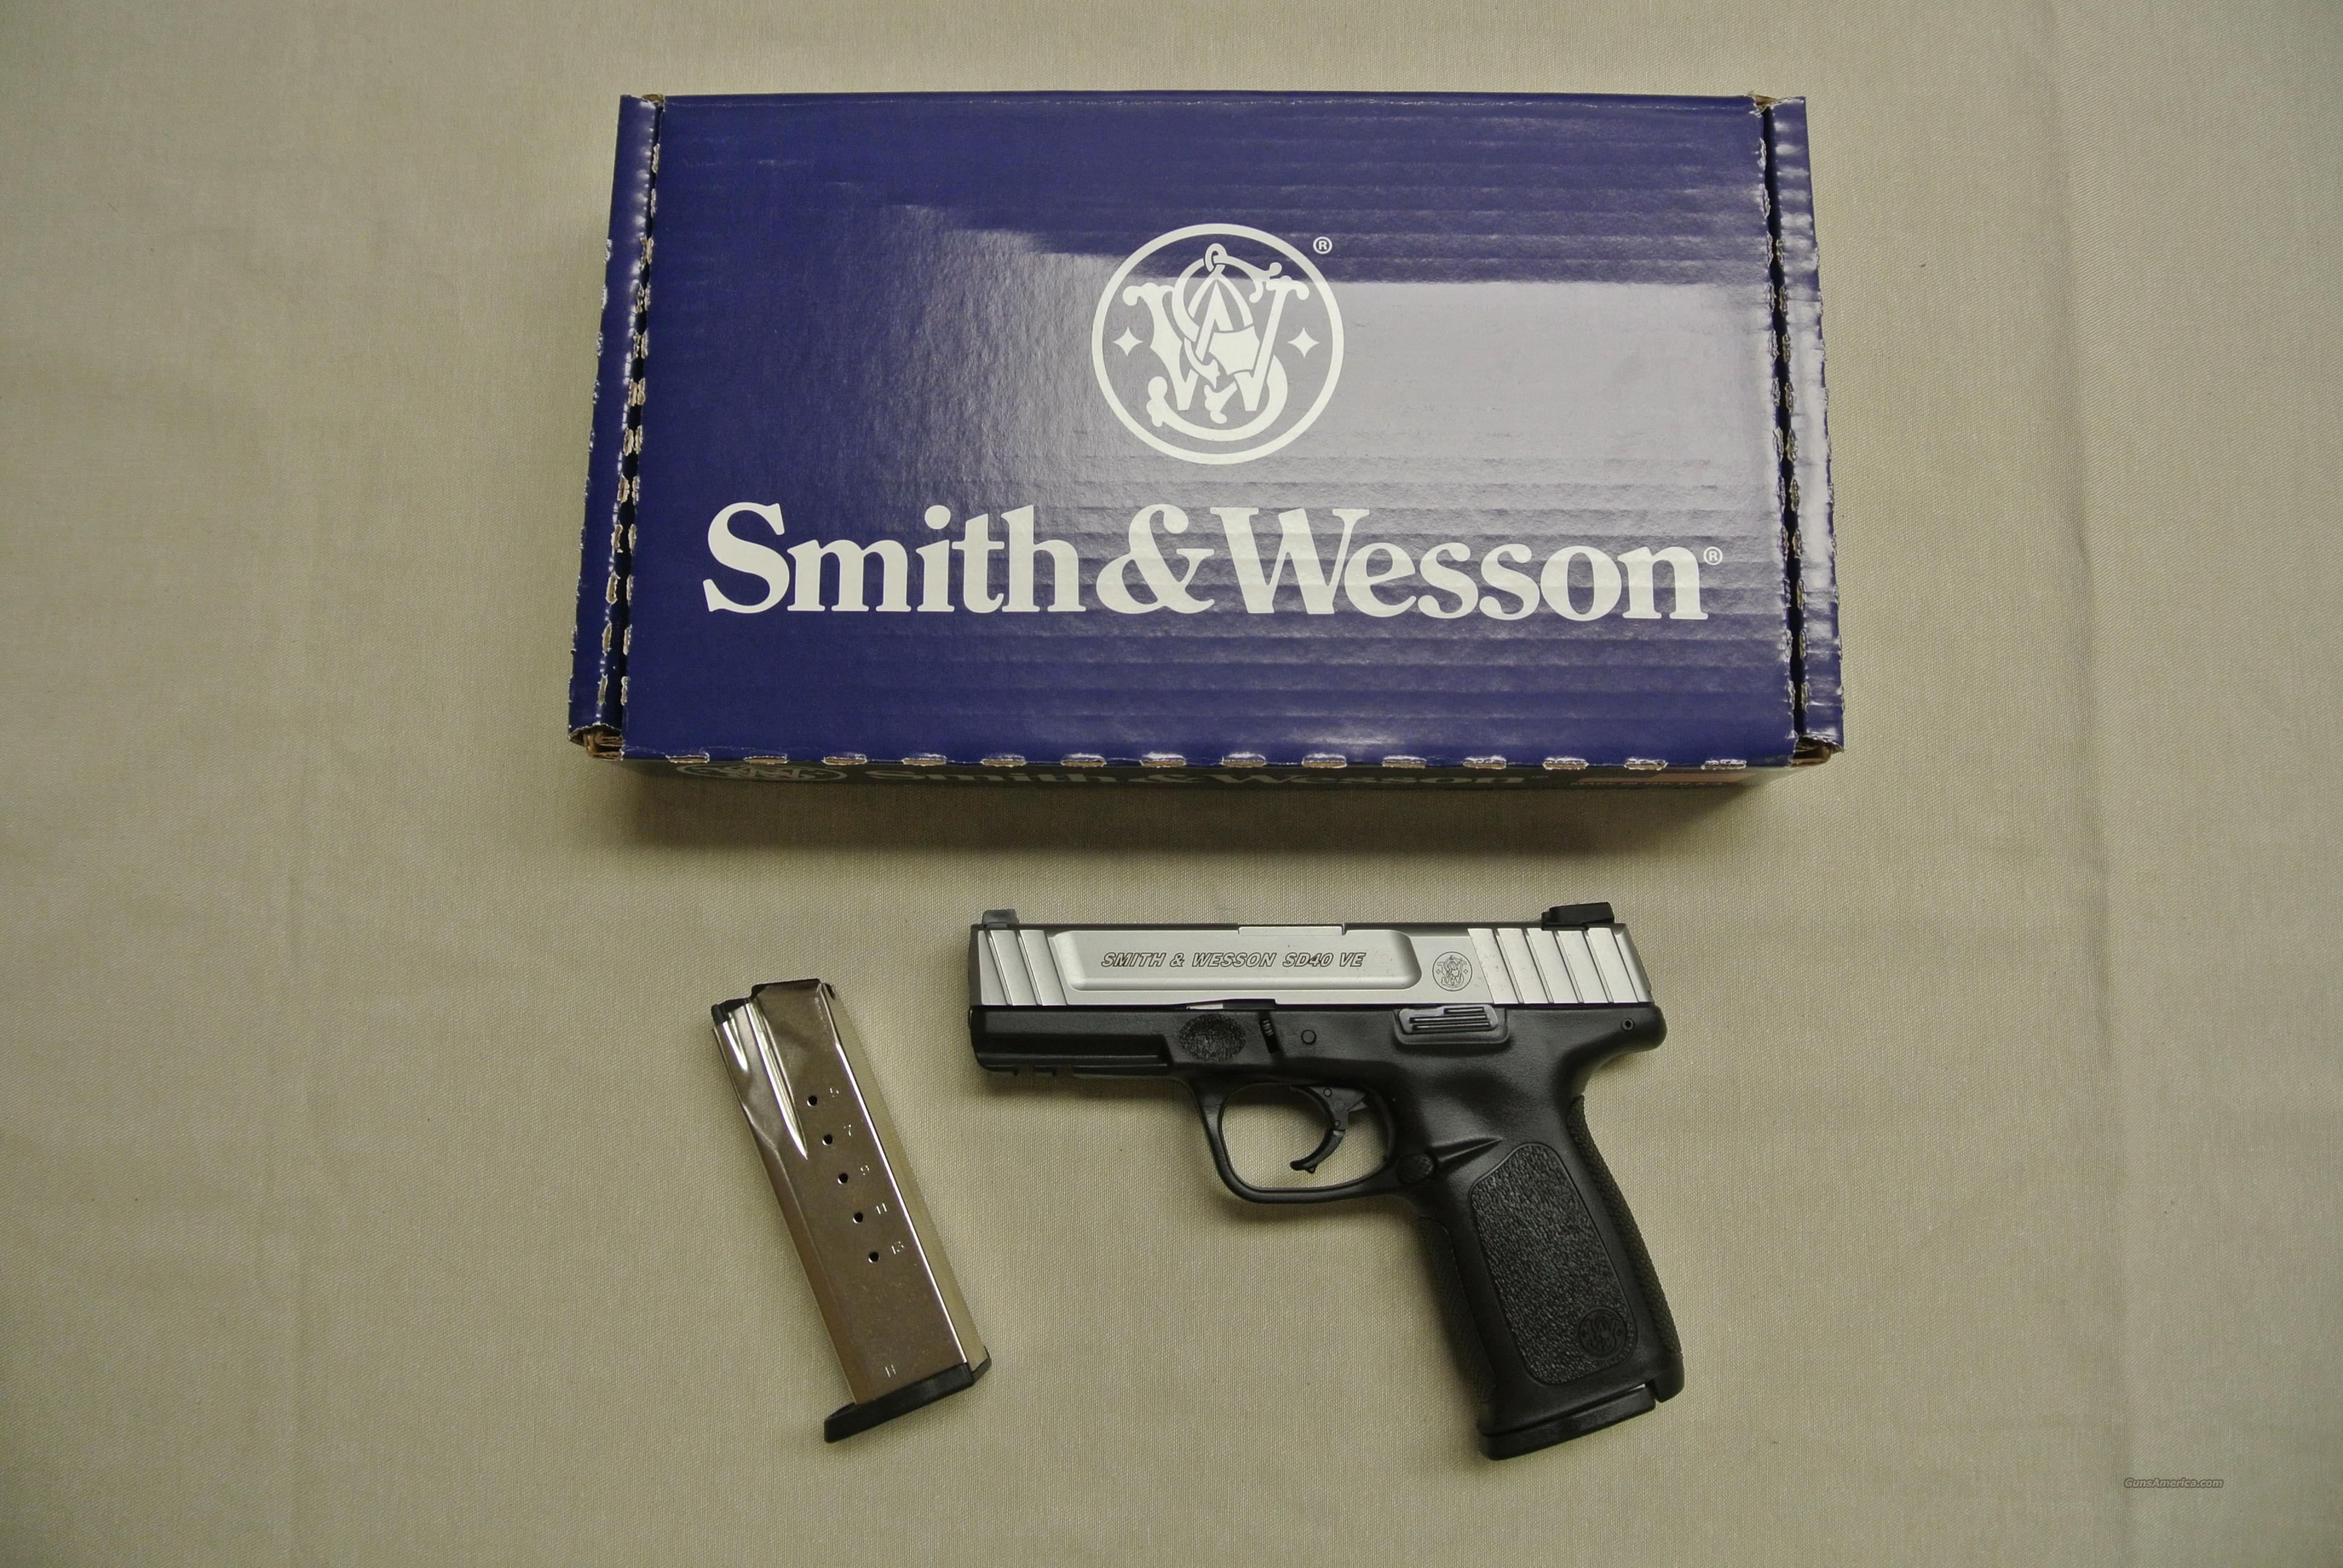 Smith & Wesson SD40VE .40SW Pistol  Guns > Pistols > Smith & Wesson Pistols - Autos > Polymer Frame